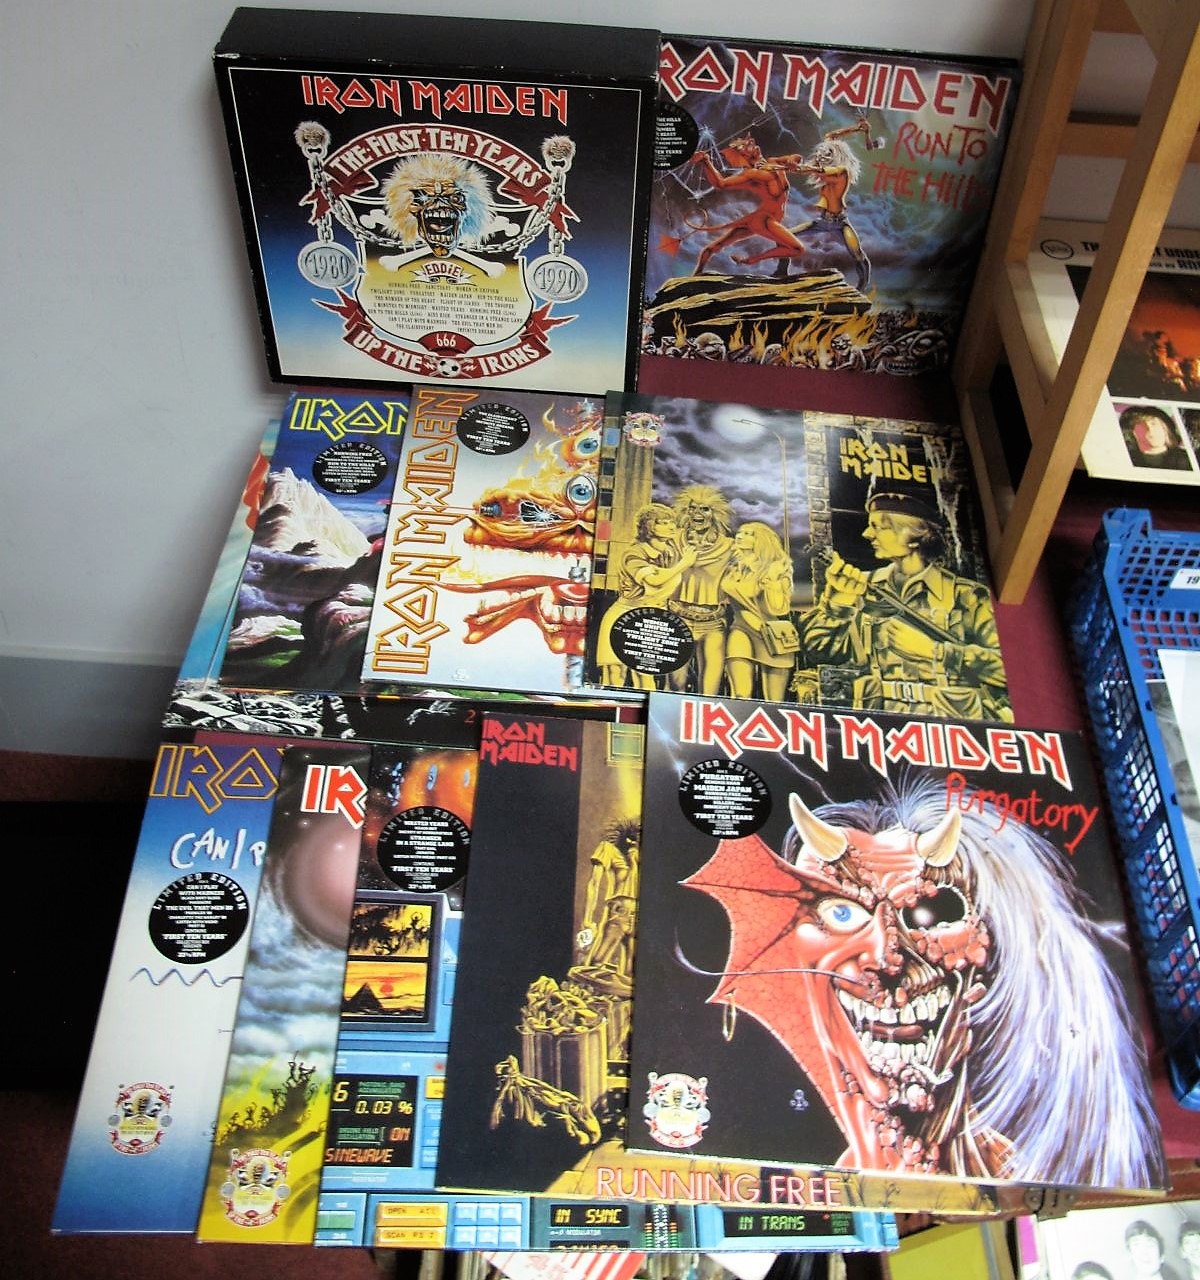 "Lot 21 - Iron Maiden - First 10 Years Box Set 'Up The Irons' - 10 double 12"""" singles - excellent"